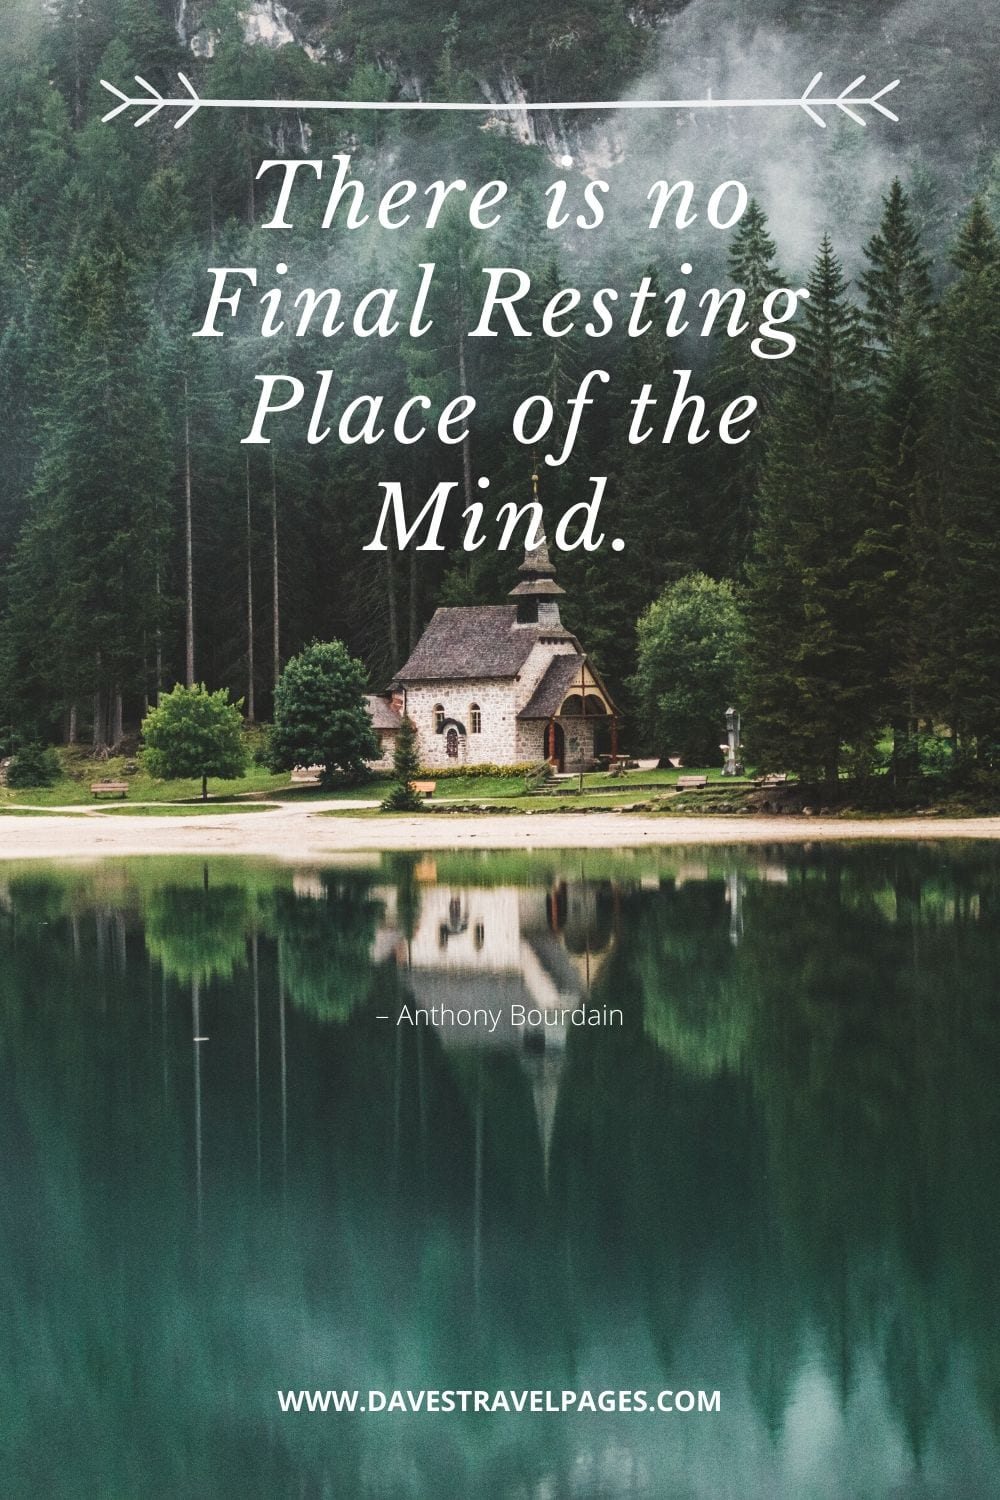 """""""There is no Final Resting Place of the Mind."""" – Anthony Bourdain"""